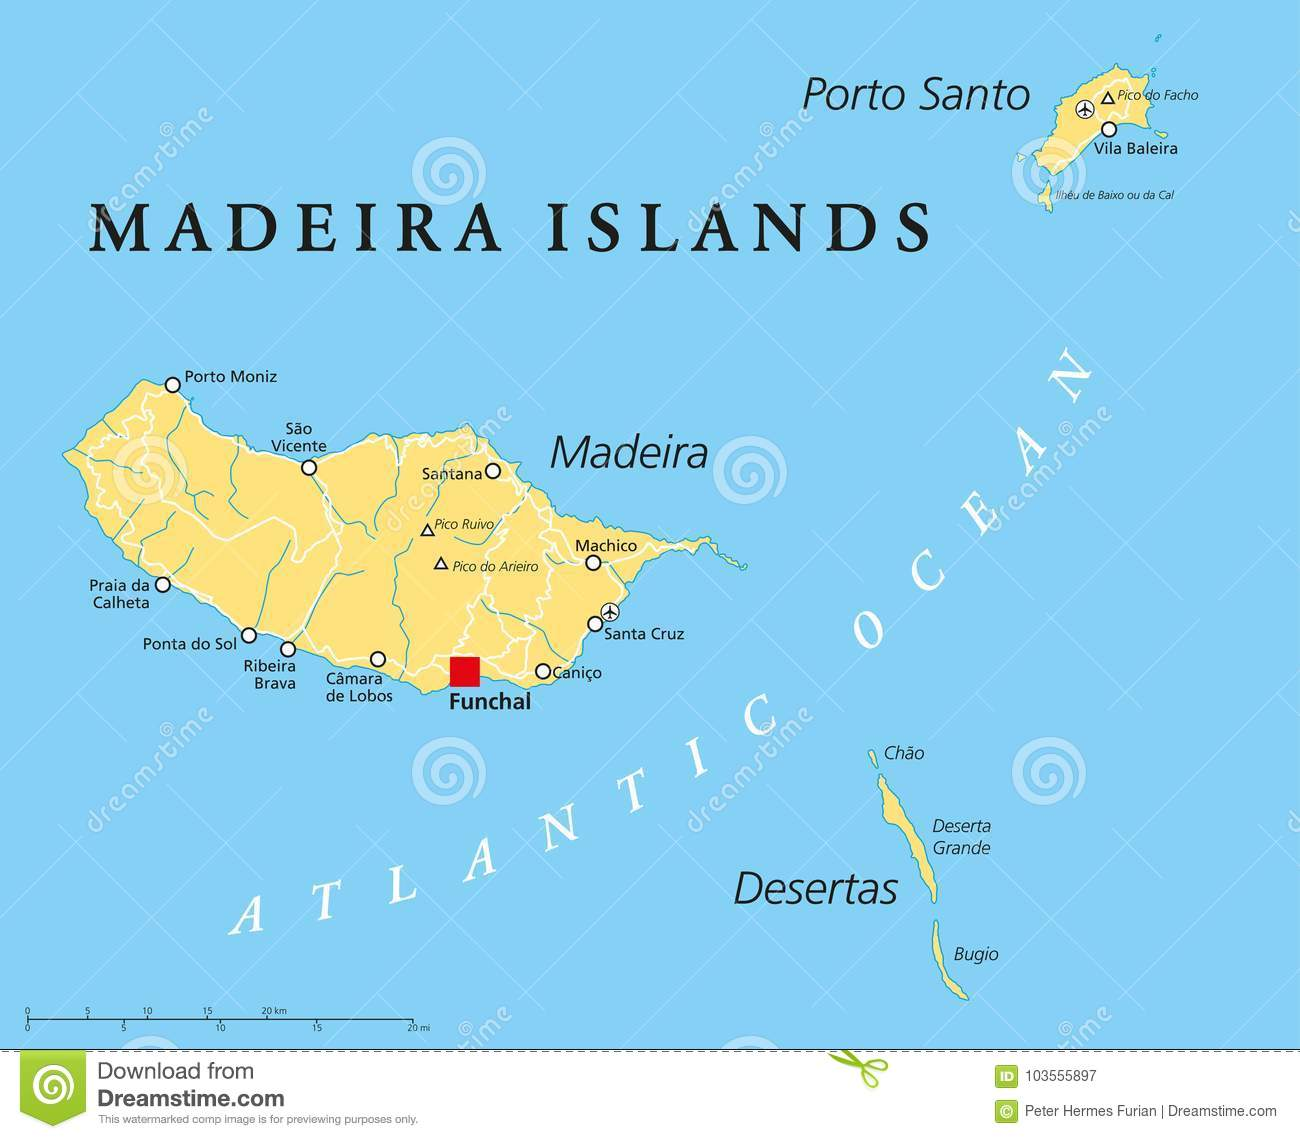 Madeira Islands Political Map Stock Vector - Illustration of ...